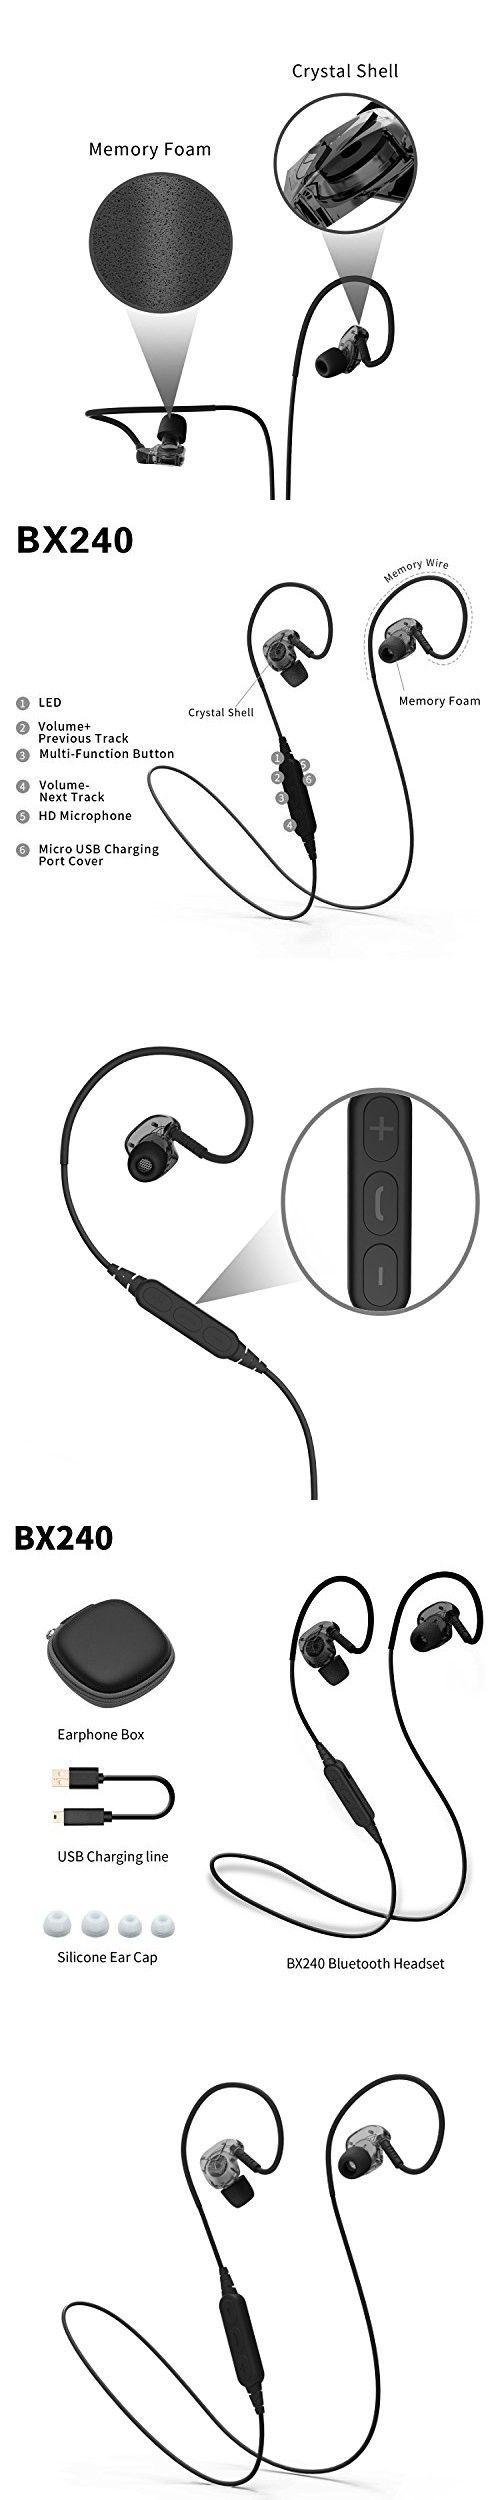 XIONG Wireless Bluetooth 4.1 Fitness Headphones Stereo Water Proof Headphones Noise Cancelling Earbuds for running,Gym (Black)